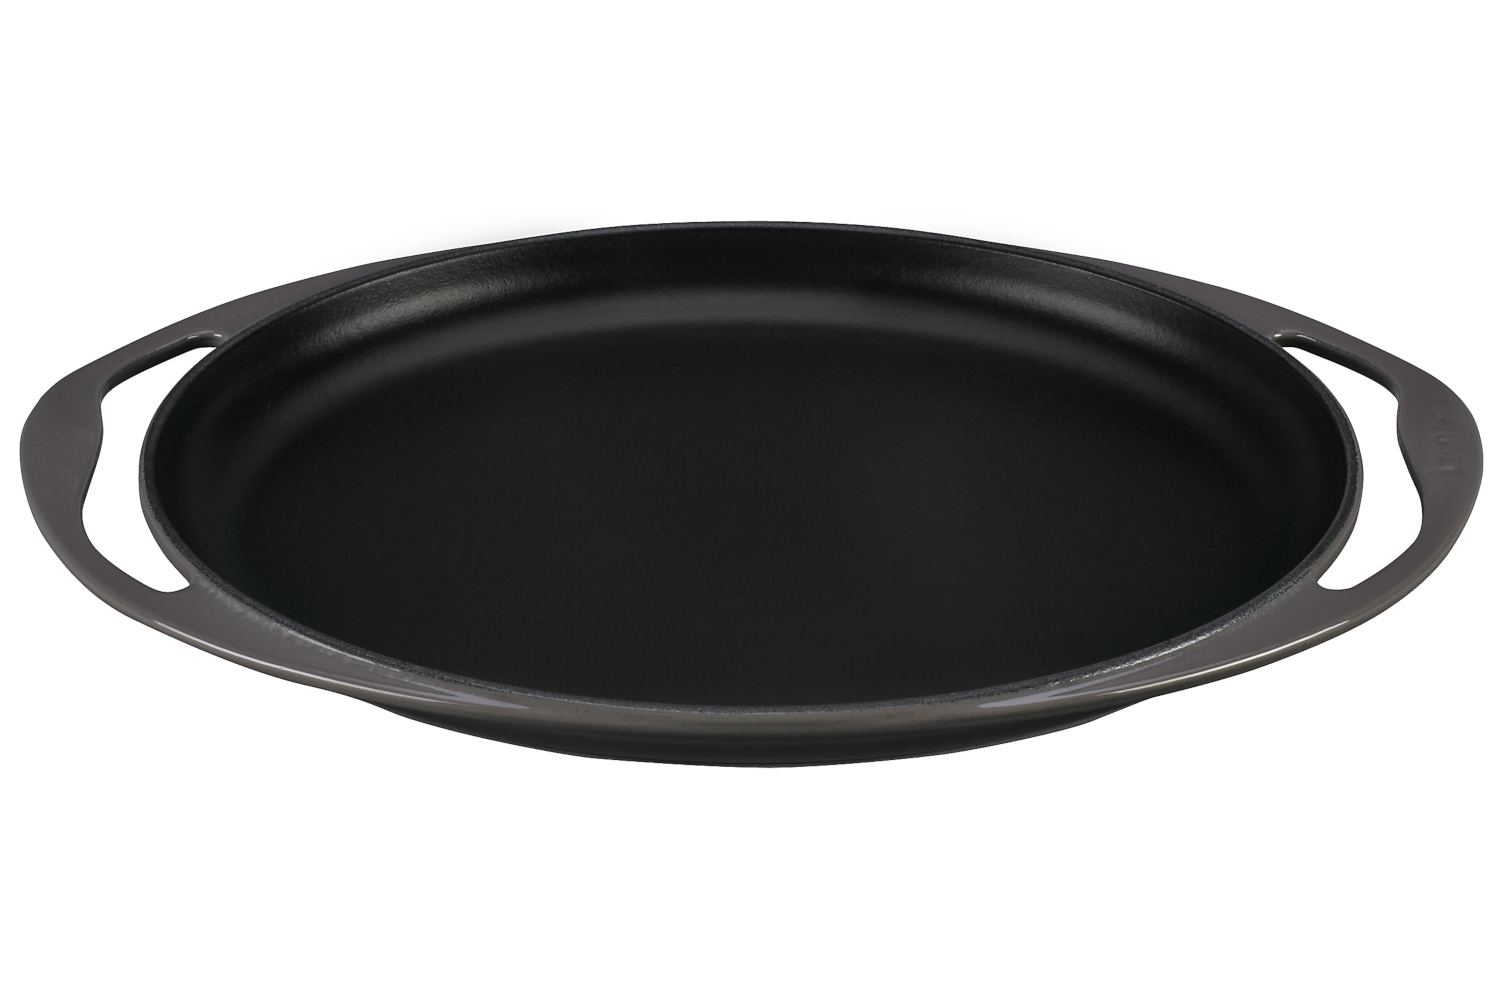 Le Creuset Enameled Cast Iron 12 1/4 inch Oval Skinny Griddle - Oyster